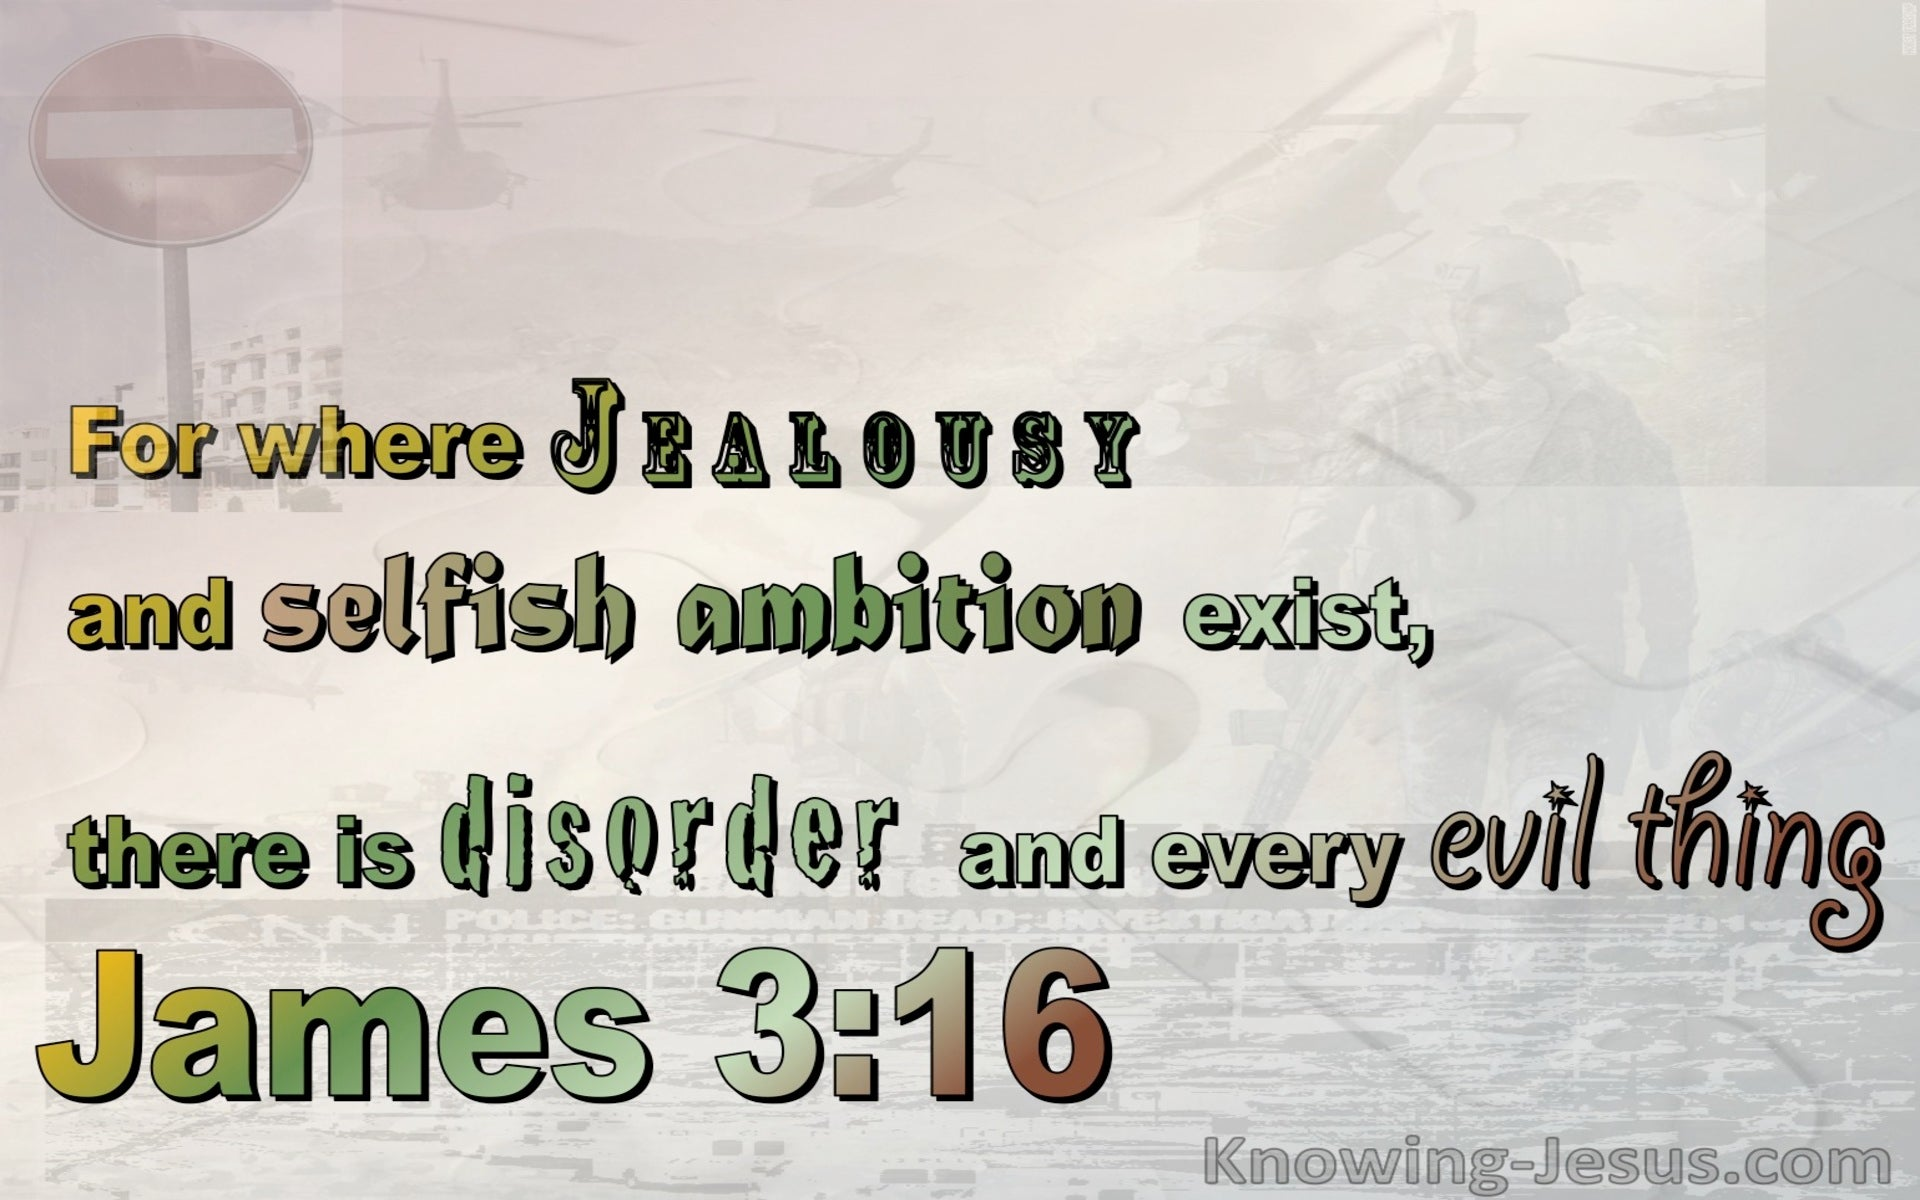 James 3:16 Jealousy And Ambition Brings Disorder and Evil (green)